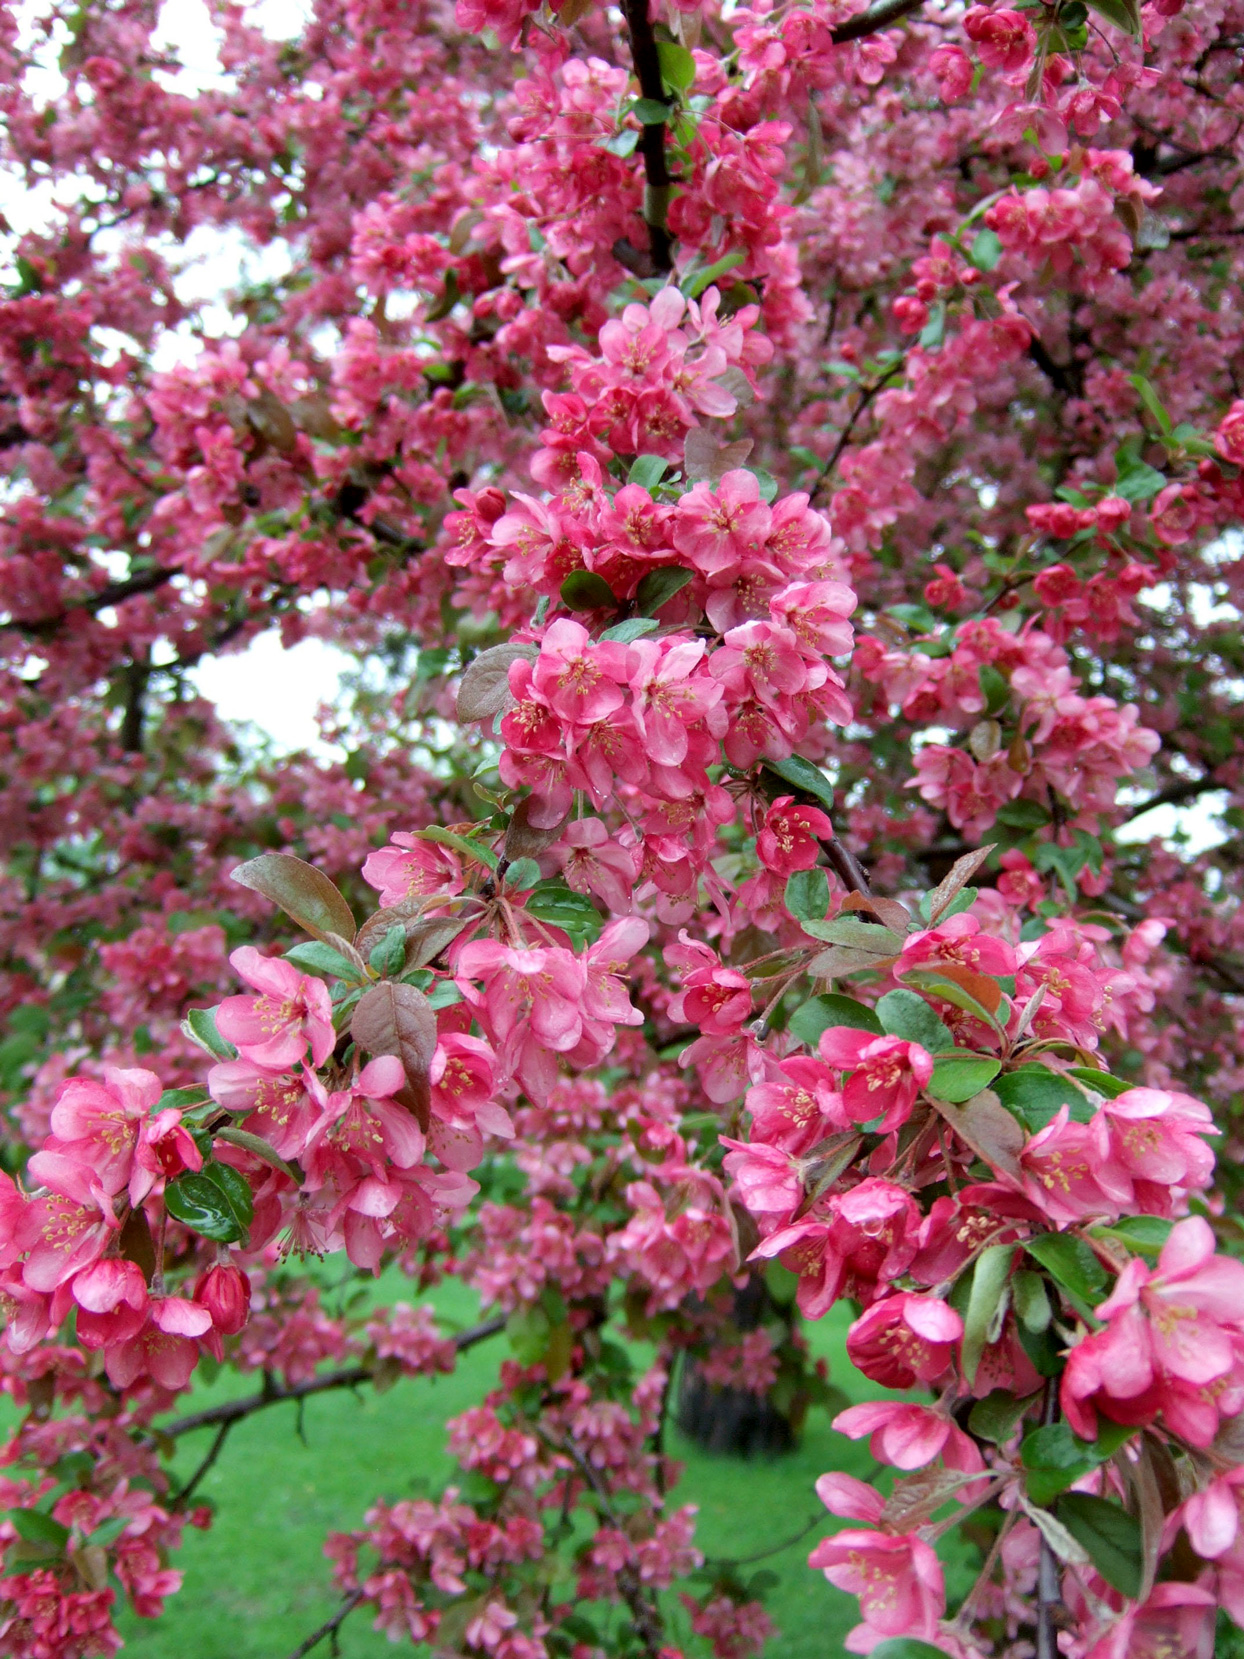 bright pink Adams crabapple blooms on tree